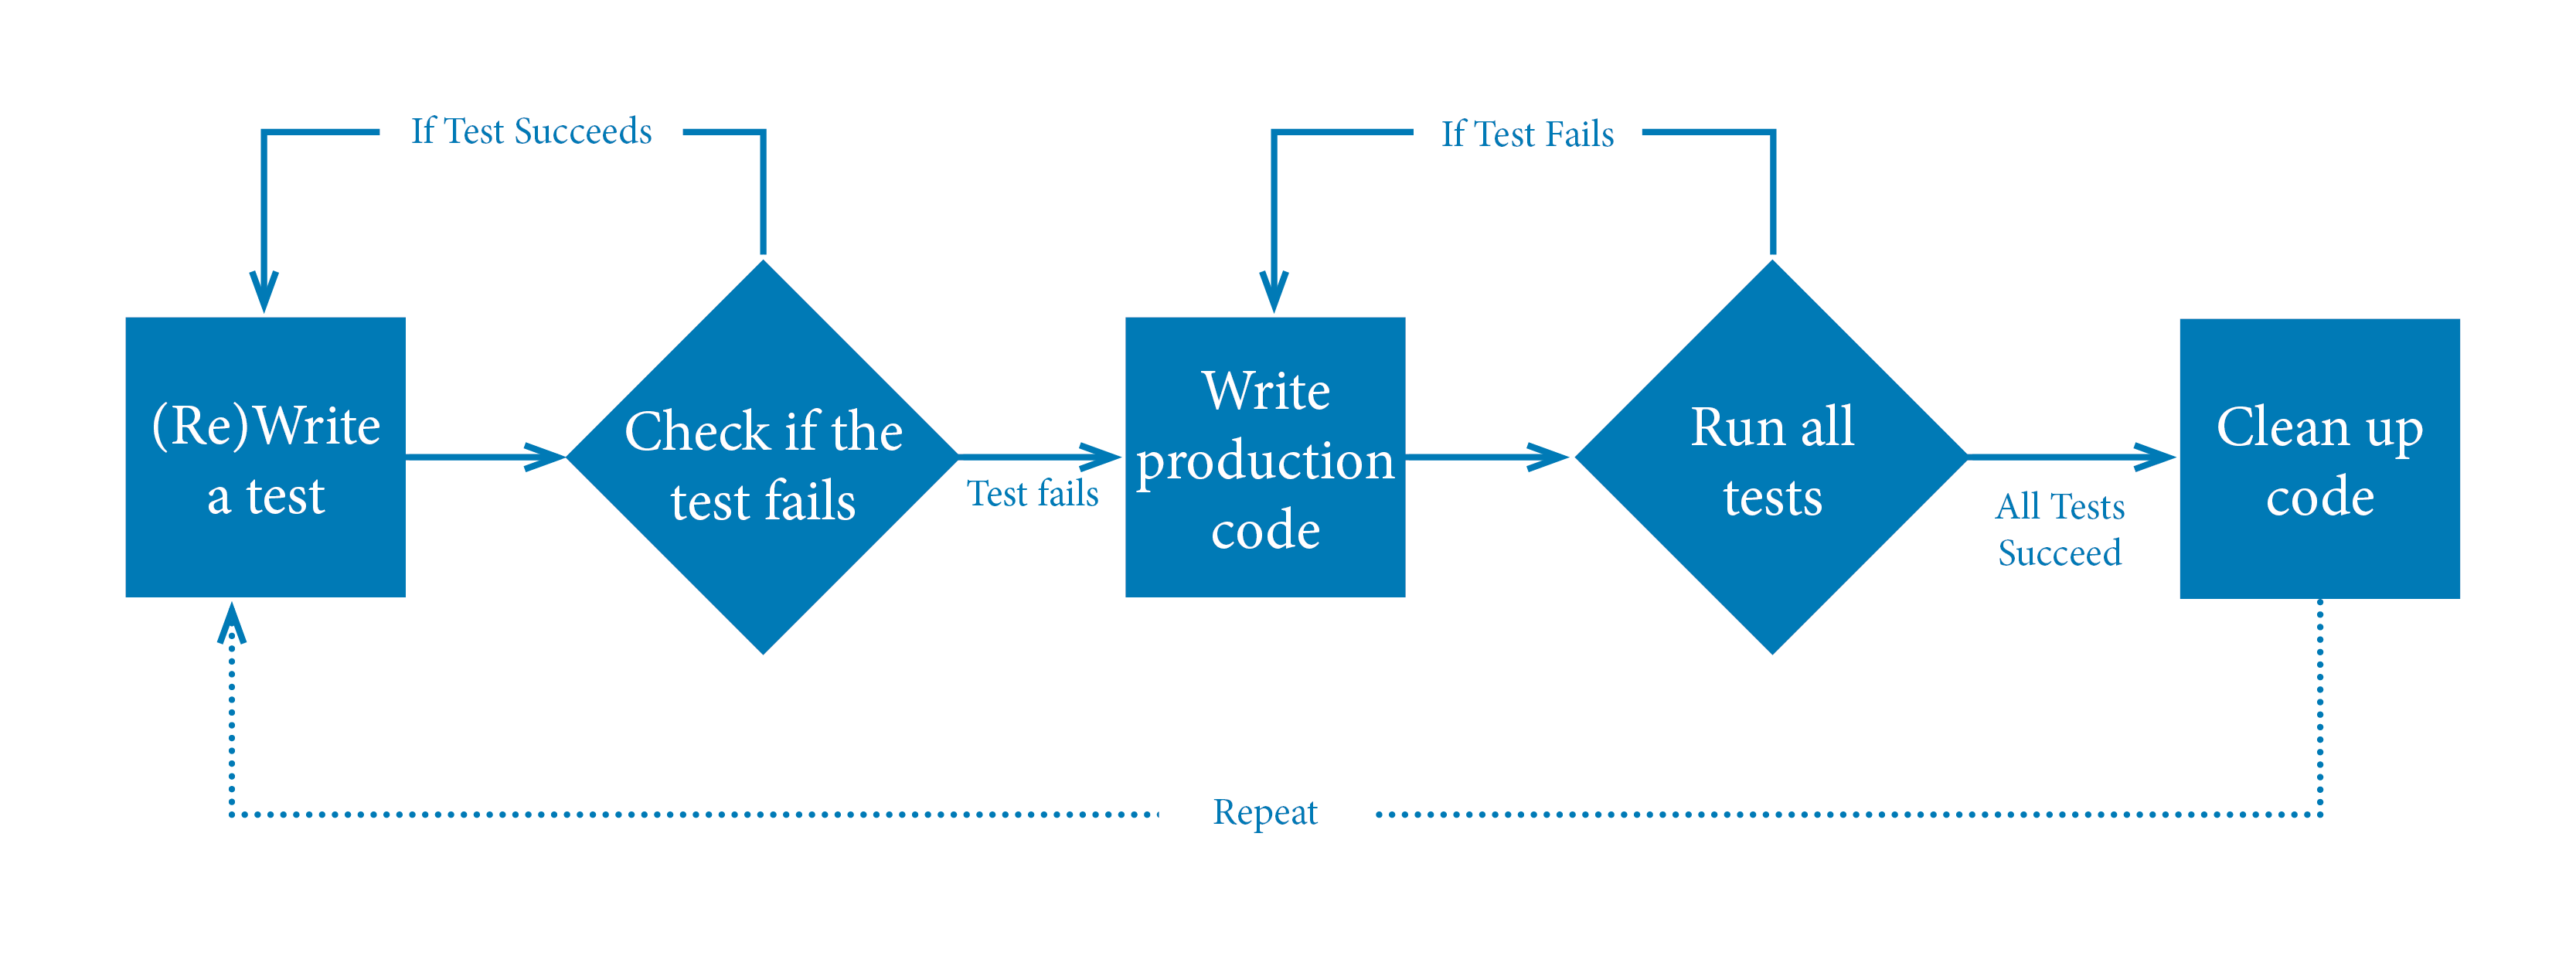 check the post:7 Steps of Test-Driven Development for a description of the image